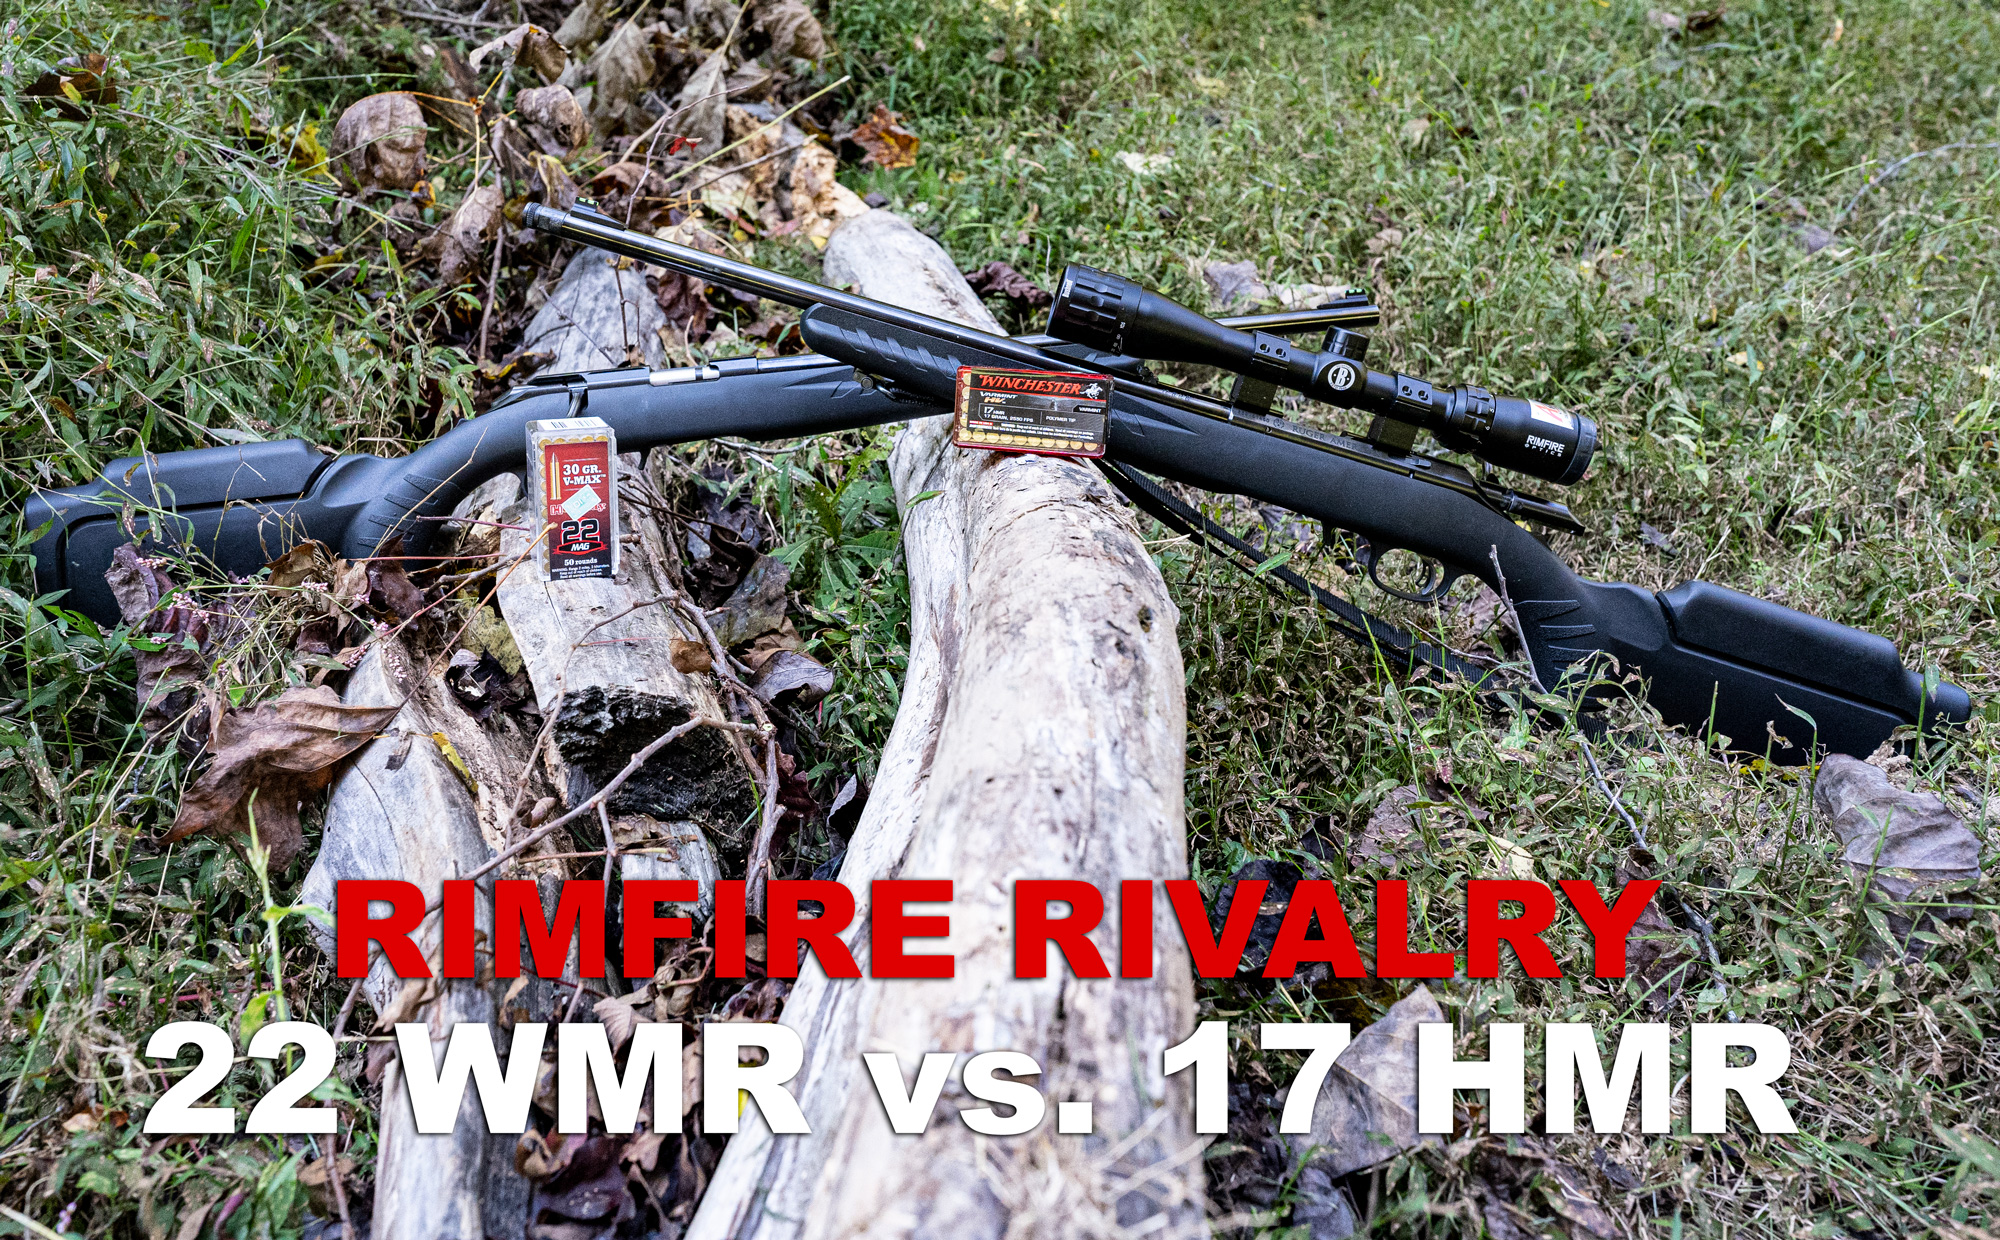 22 WMR vs 17 HMR rifles and ammo at a shooting range